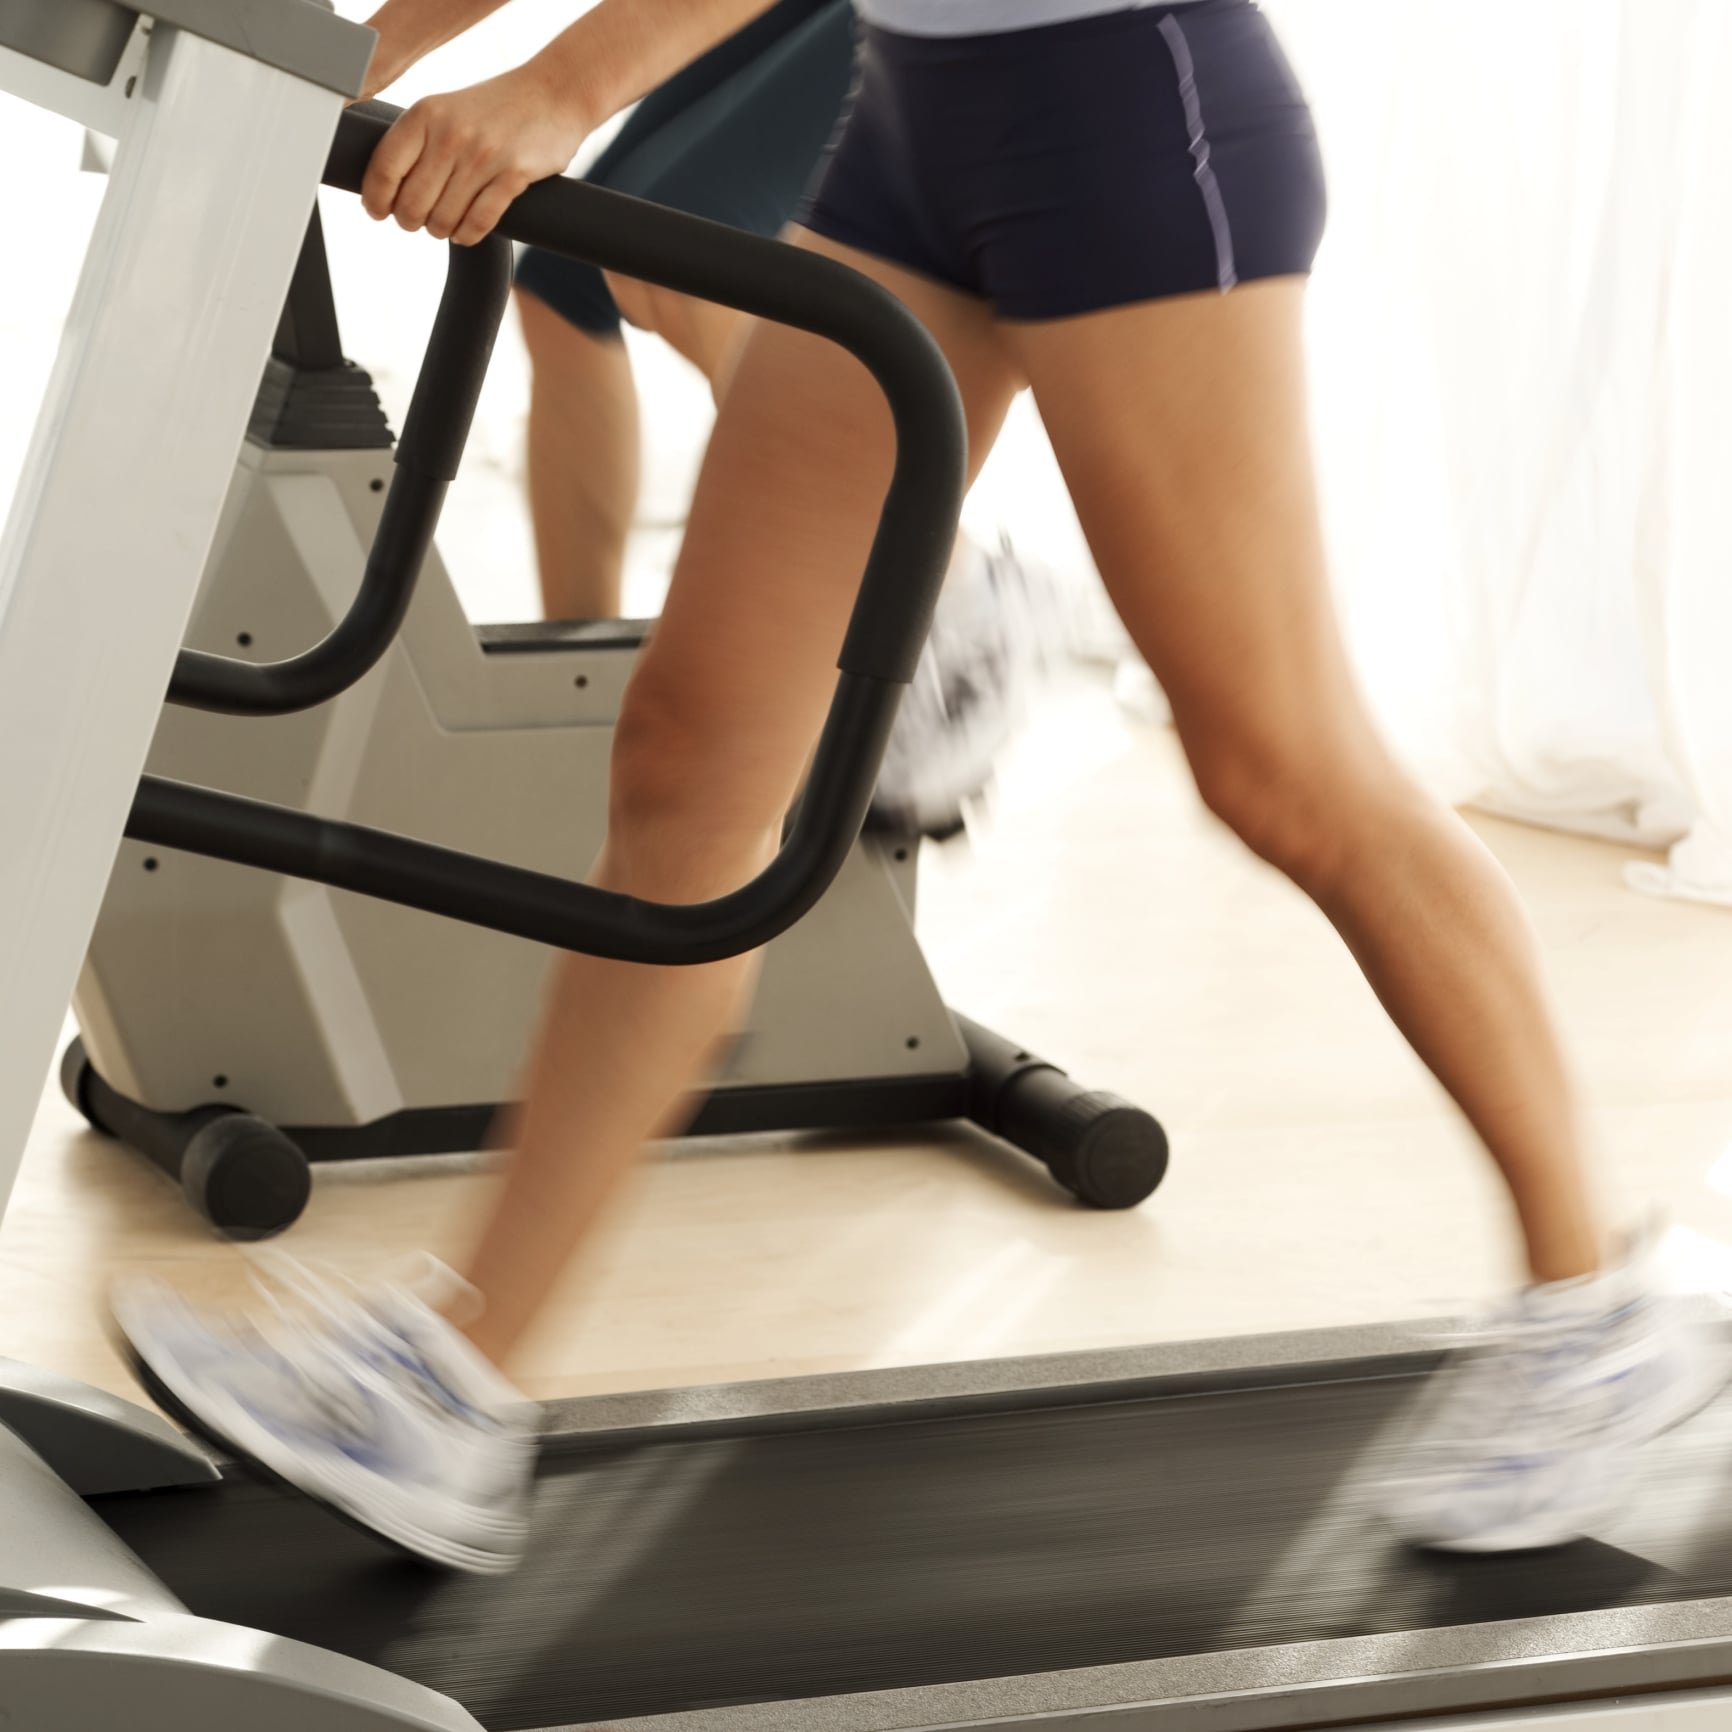 Choosing All Cardio, All the Time